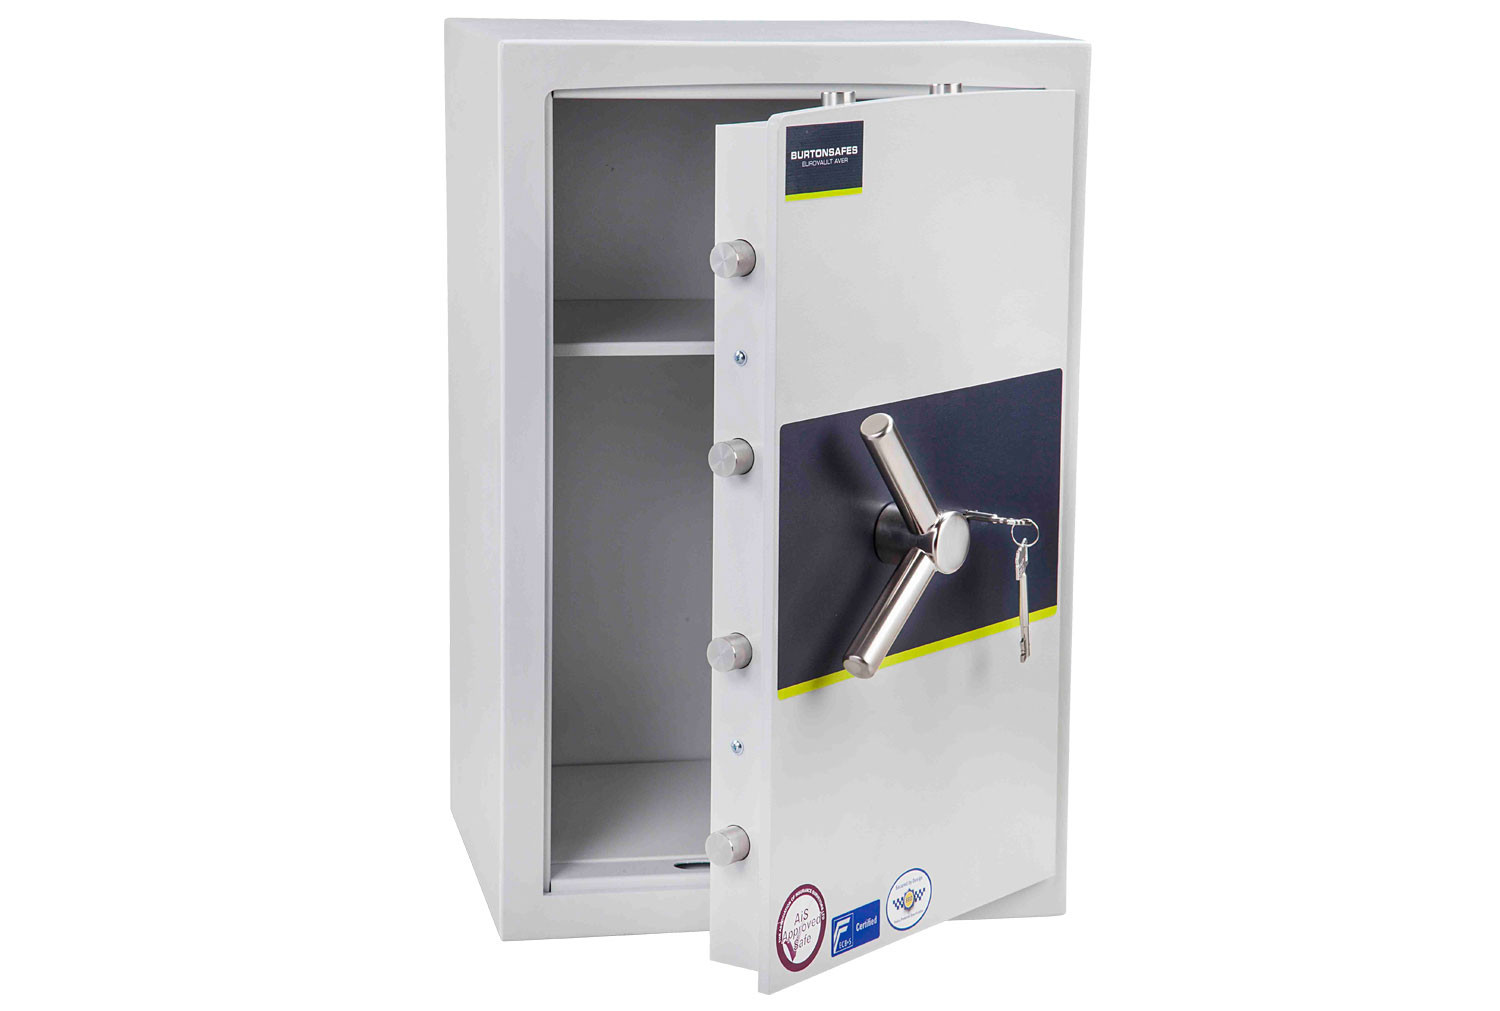 Burton Eurovault Aver Grade 1 Size 3 Safe With Key Lock (71ltrs)